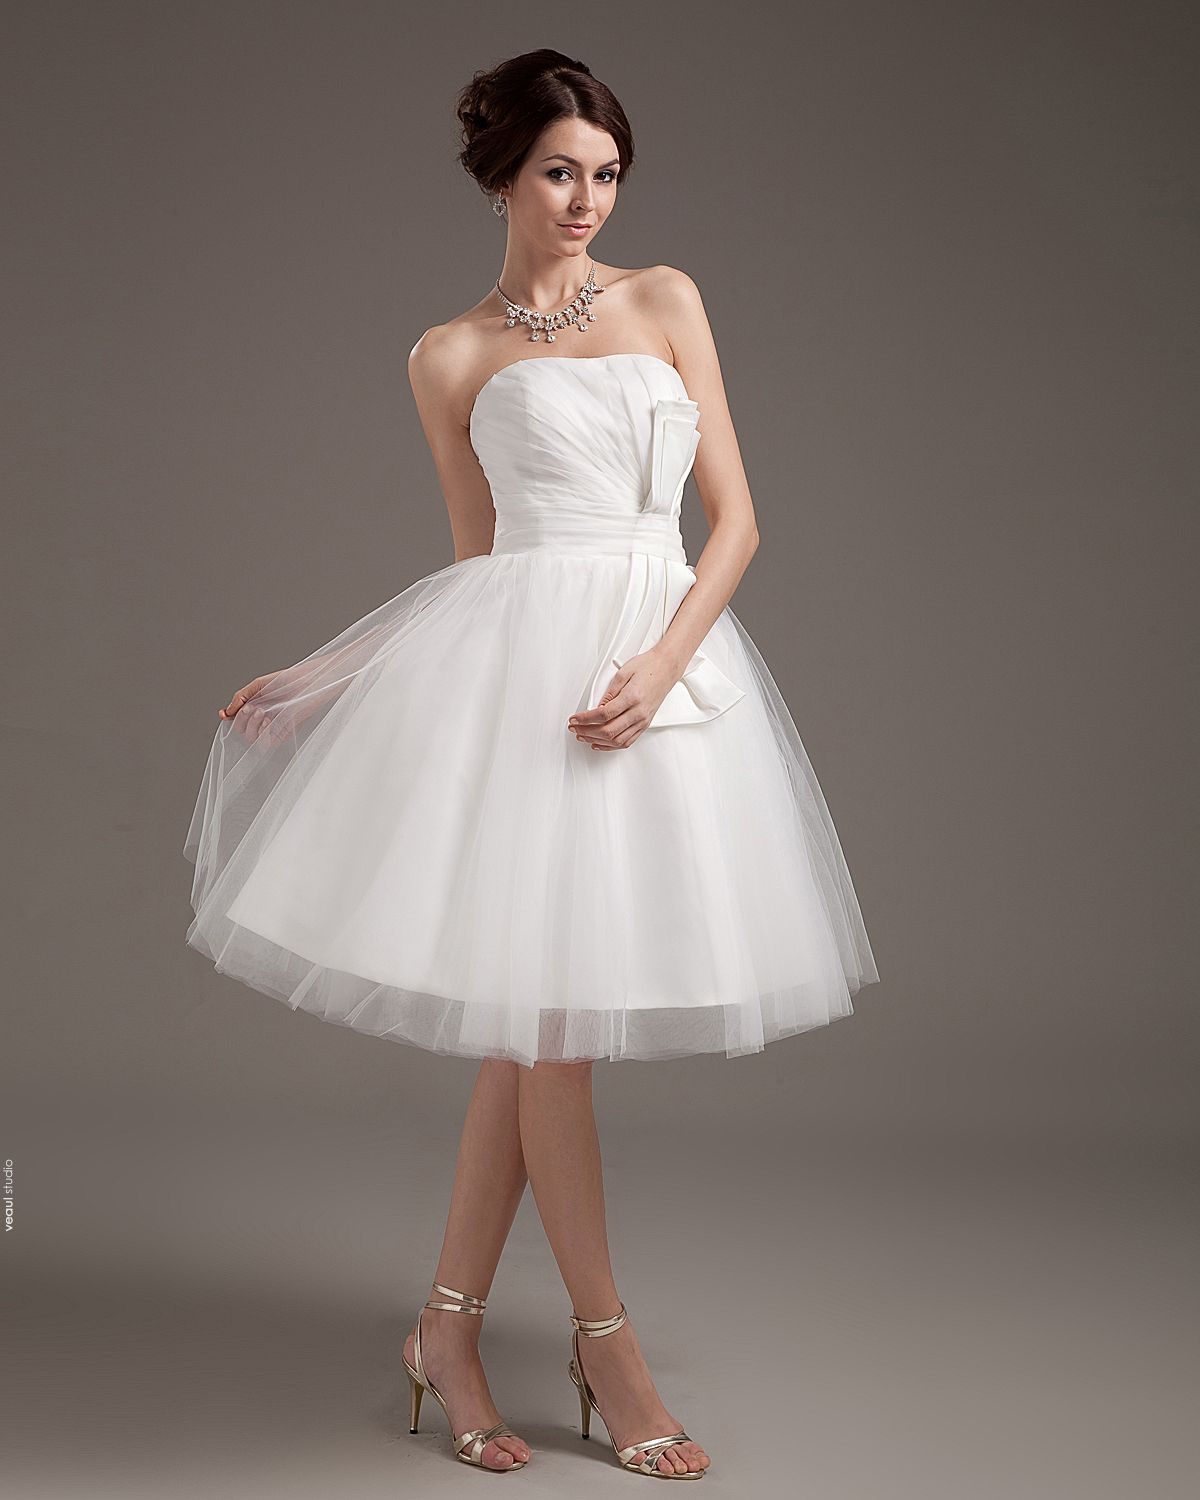 Yarn Ruffle Short Bridal Gown Wedding Dress